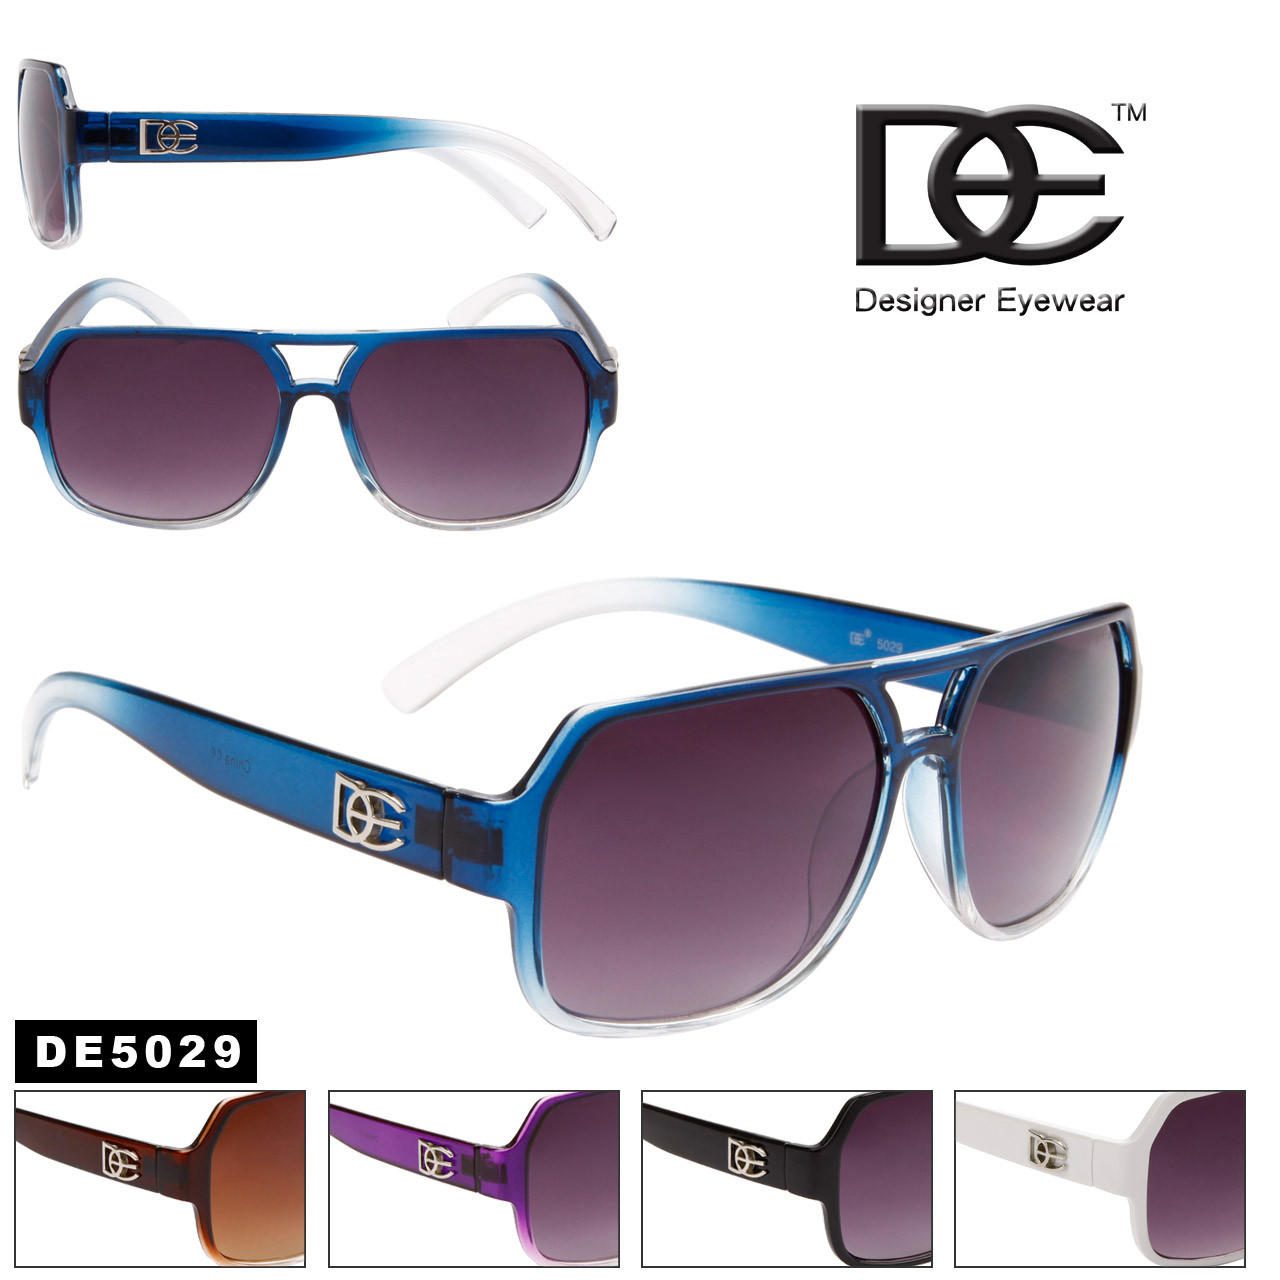 Wholesale DE™ Aviator Sunglasses - DE5029